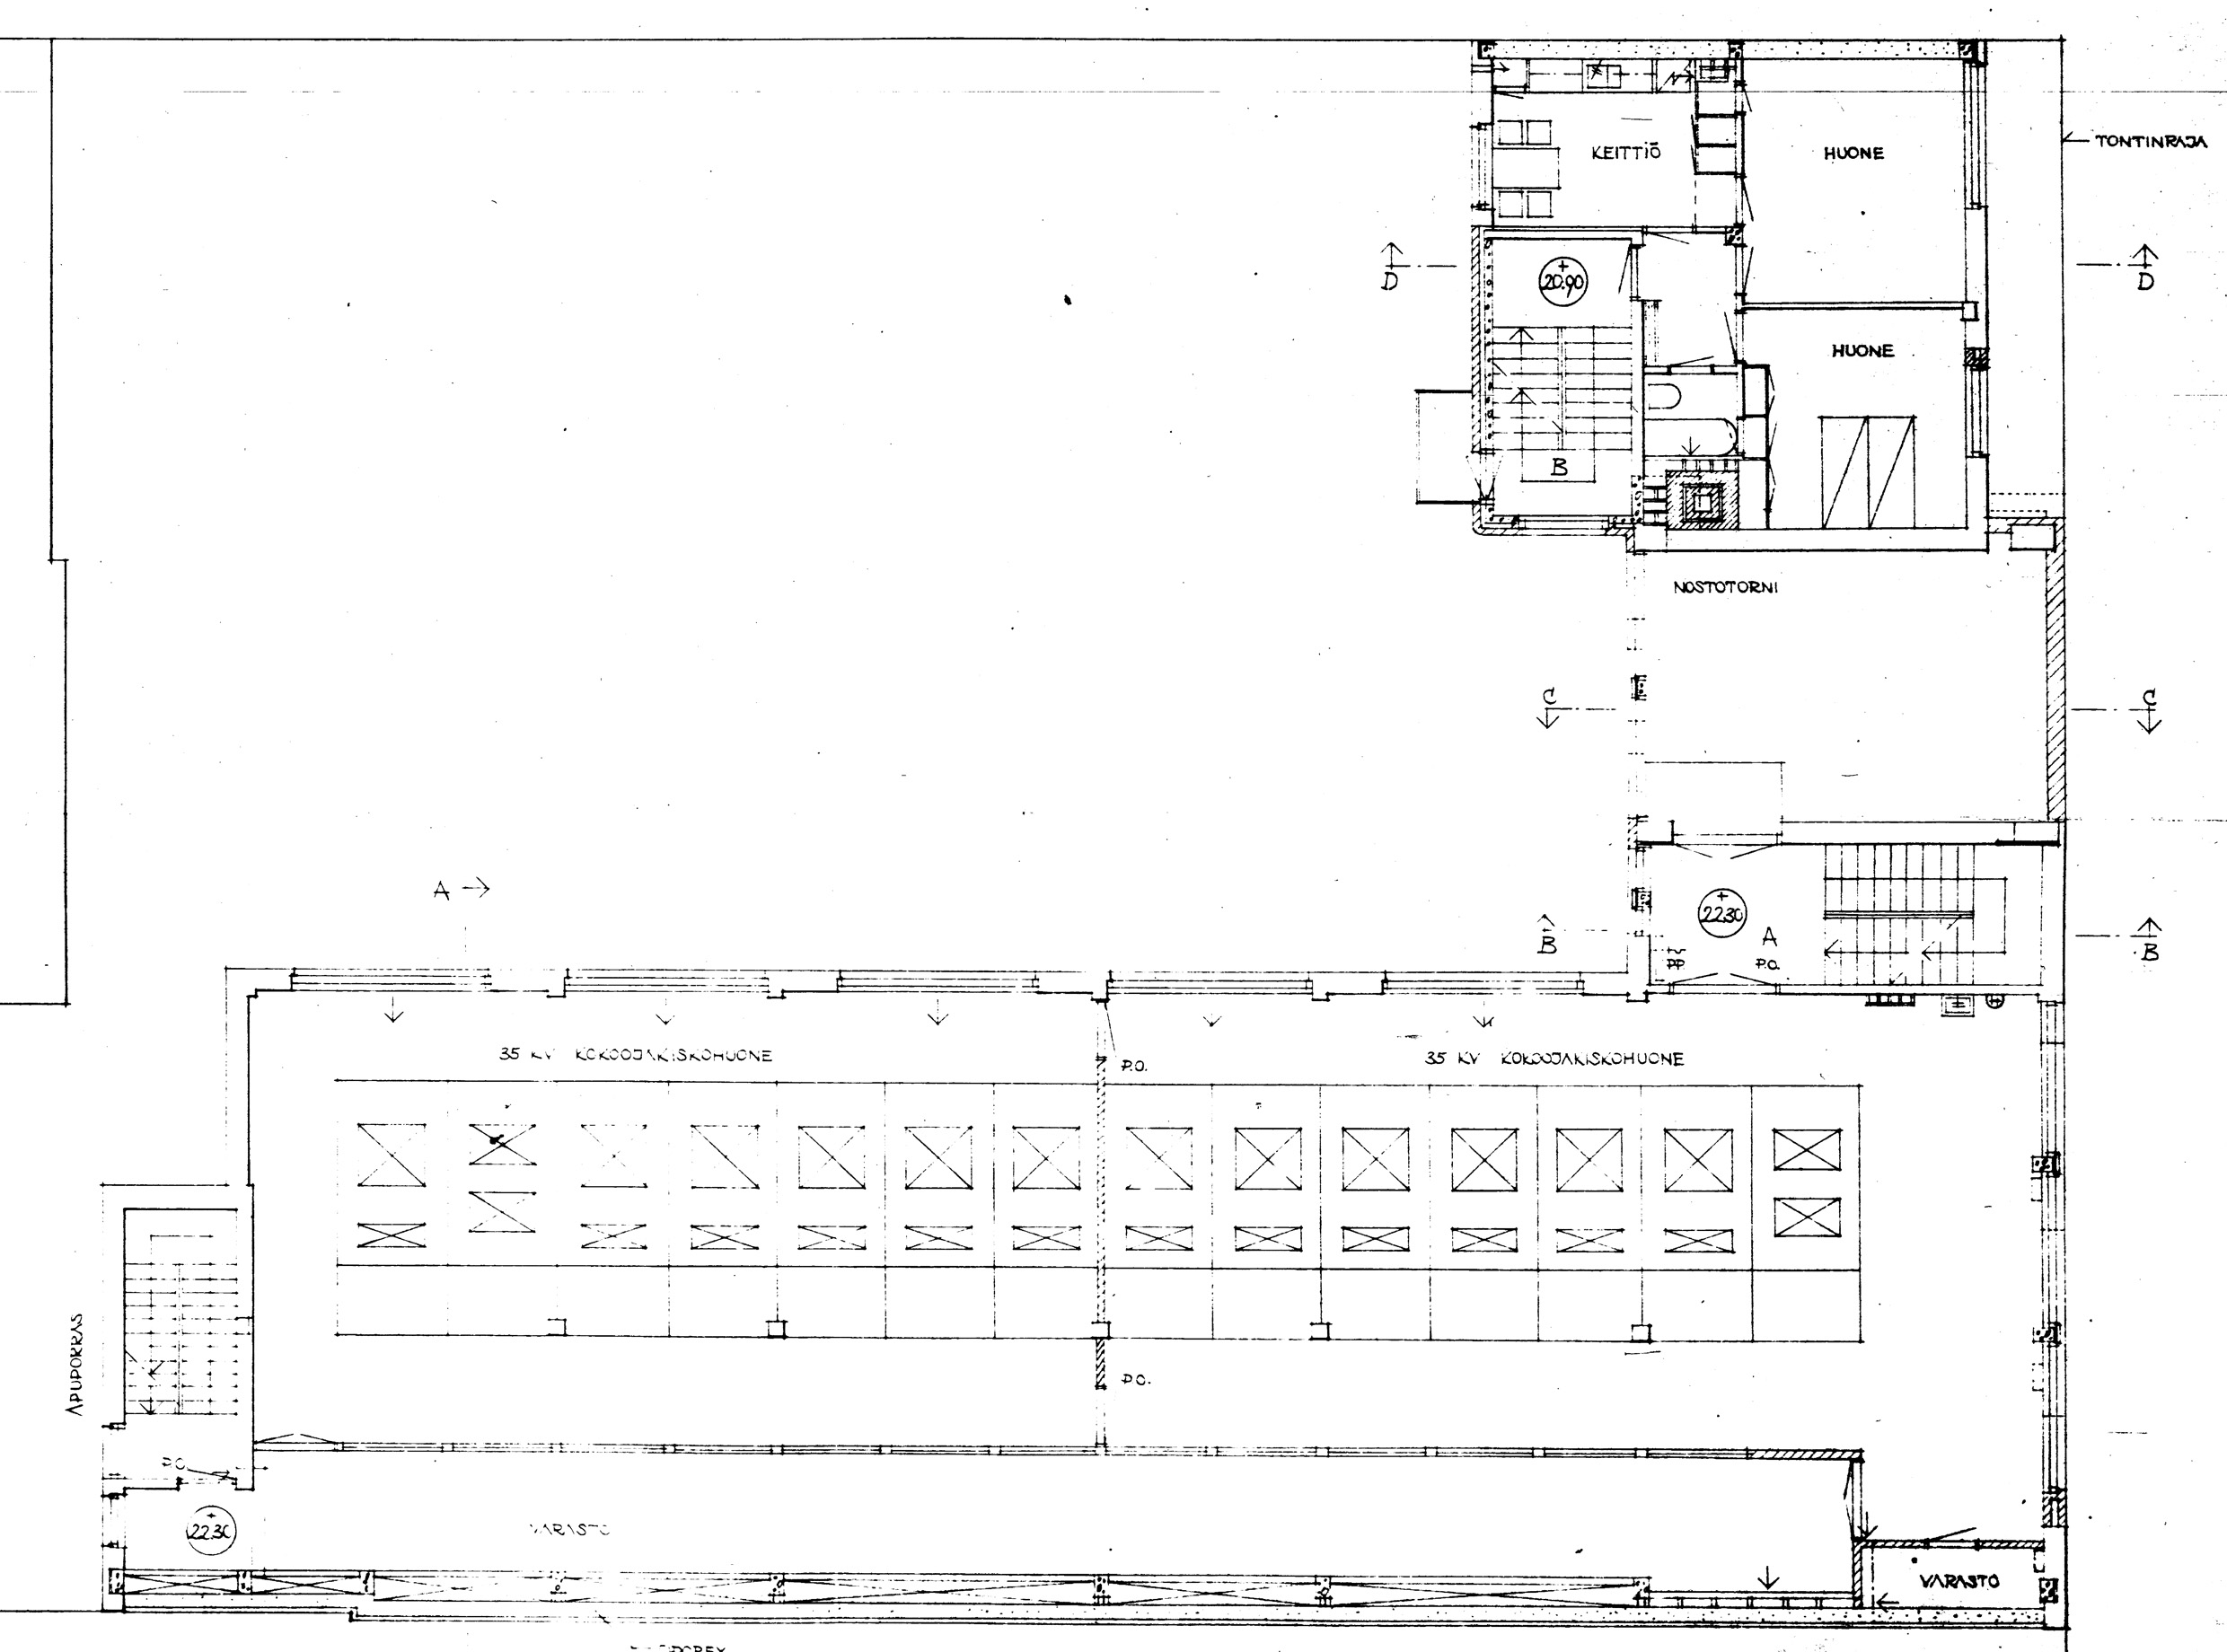 Sanna Merilinen Page 4 Strange Home Atlas Substation Rooms Layout Diagram 4th Floor Plan With And Apartment Wing